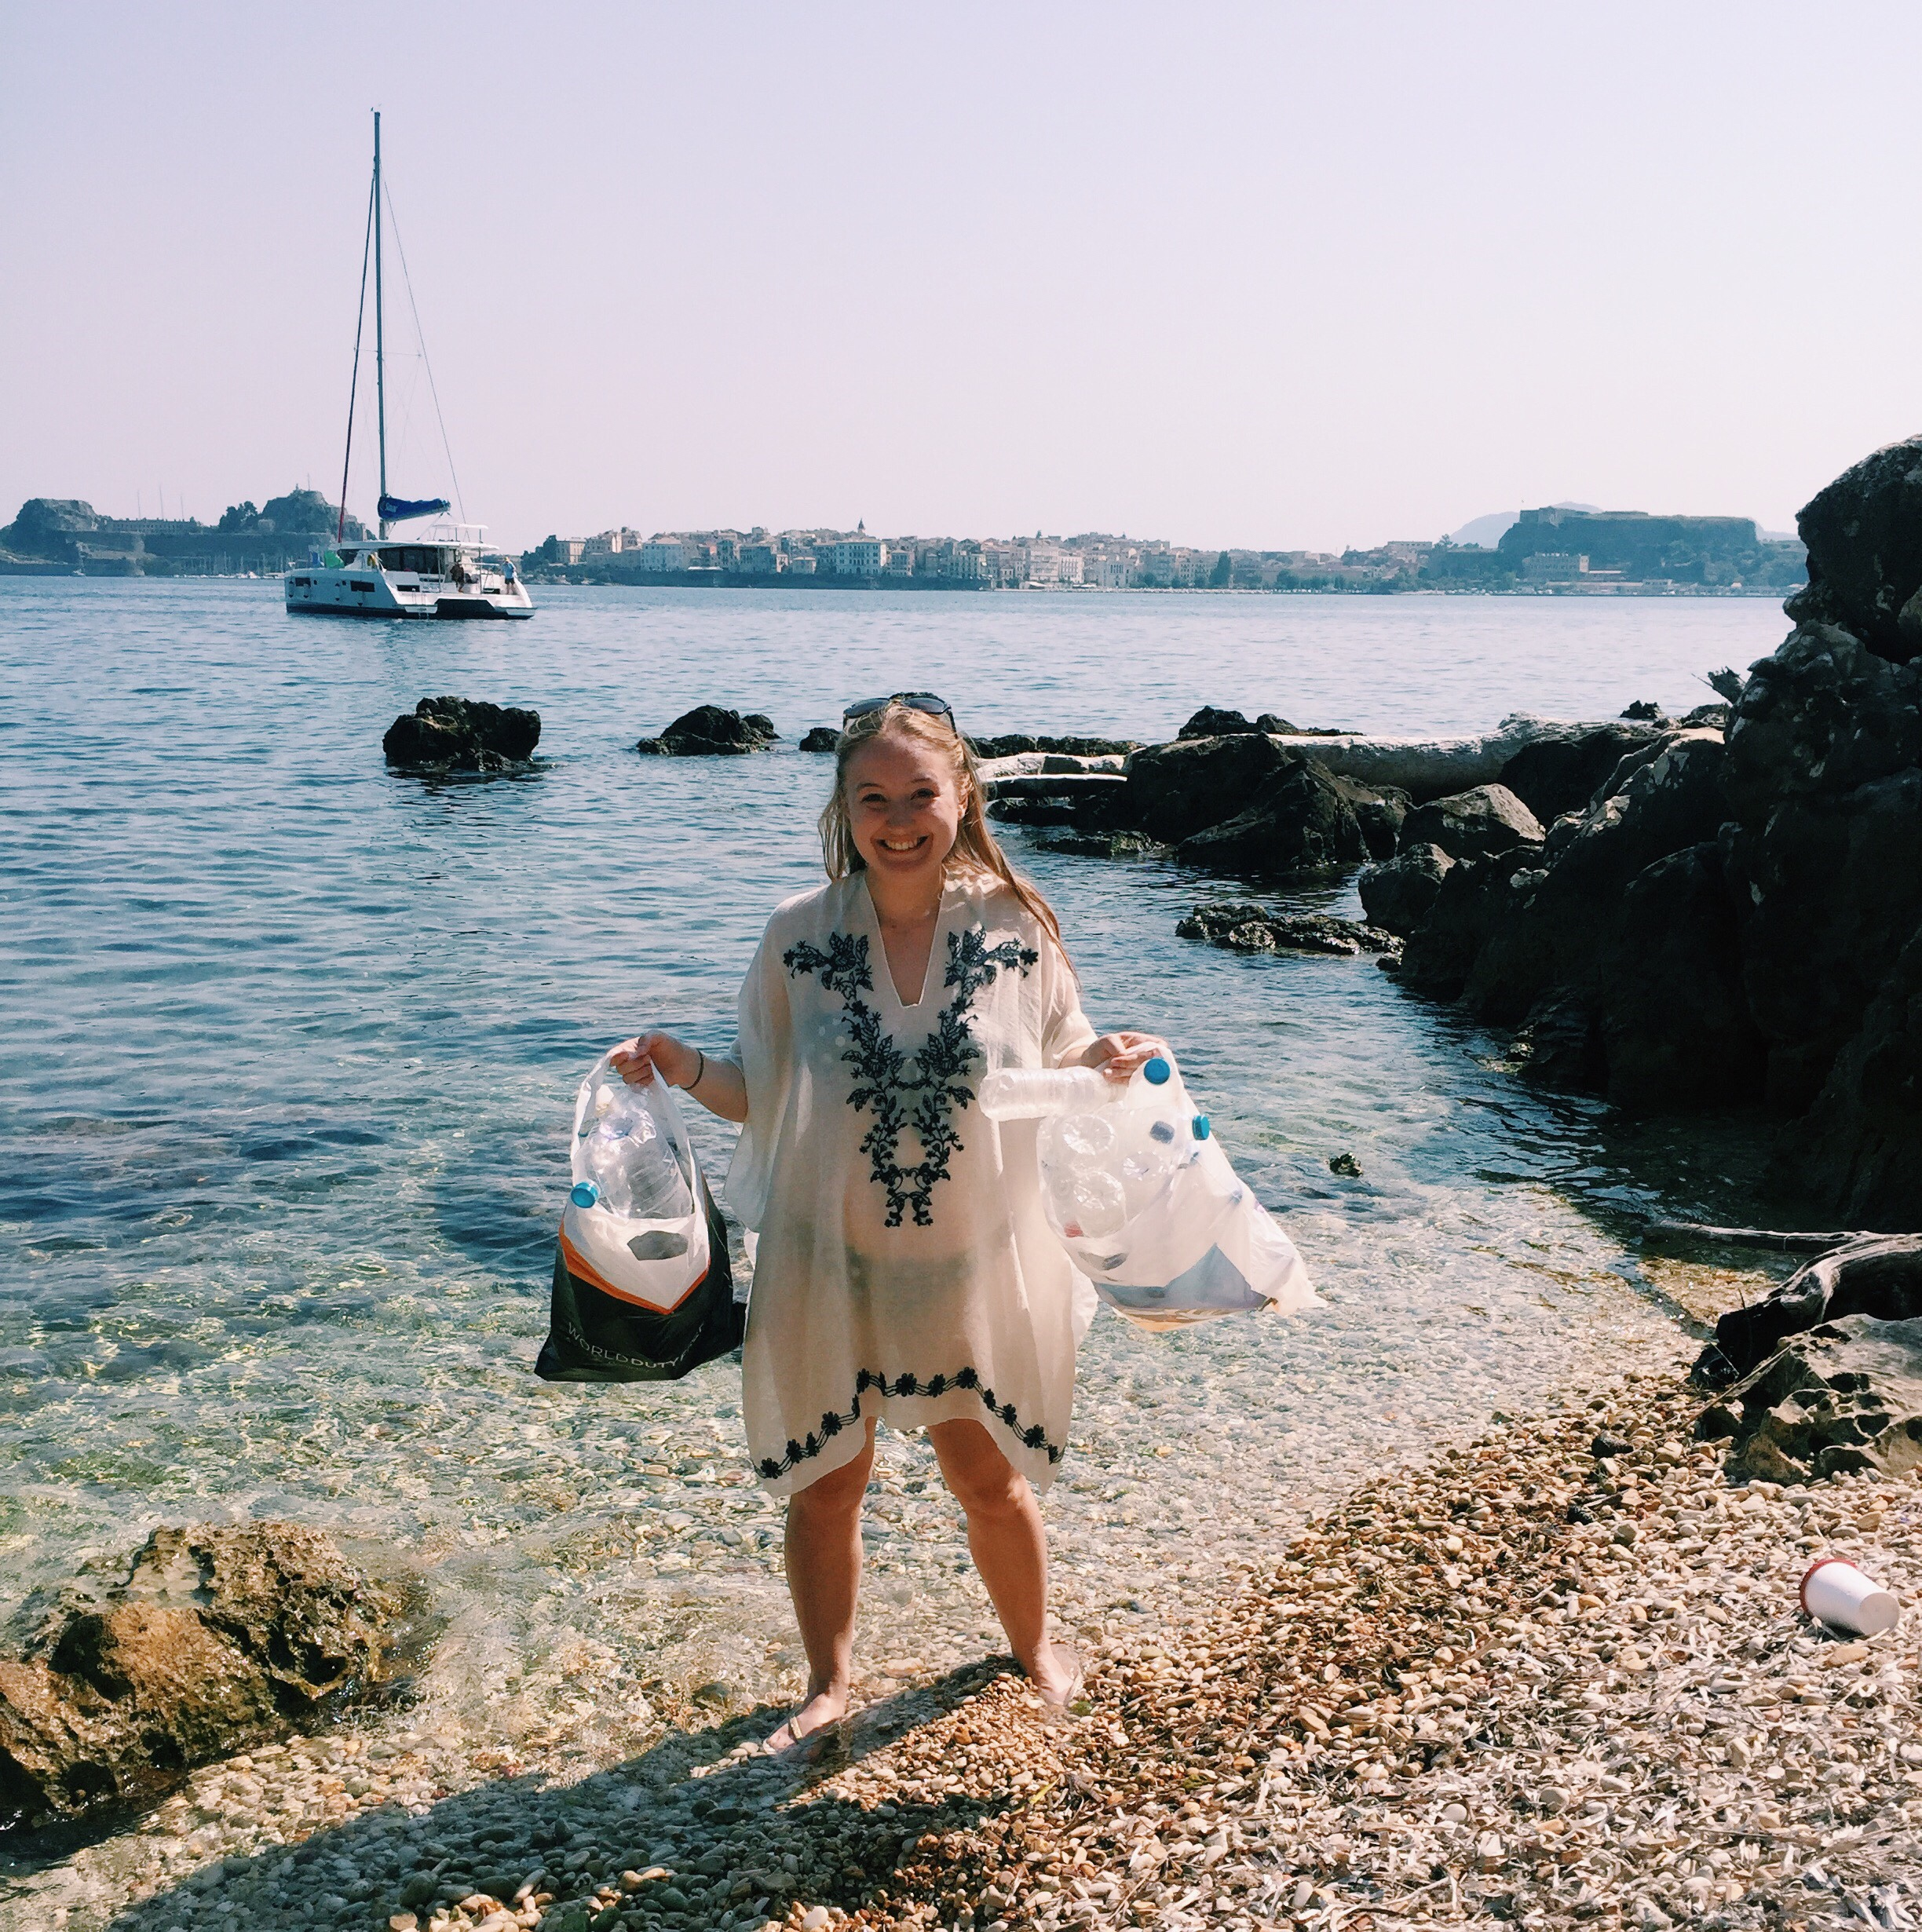 Sailing in Corfu: My Plastic Pledge & Beach Clean